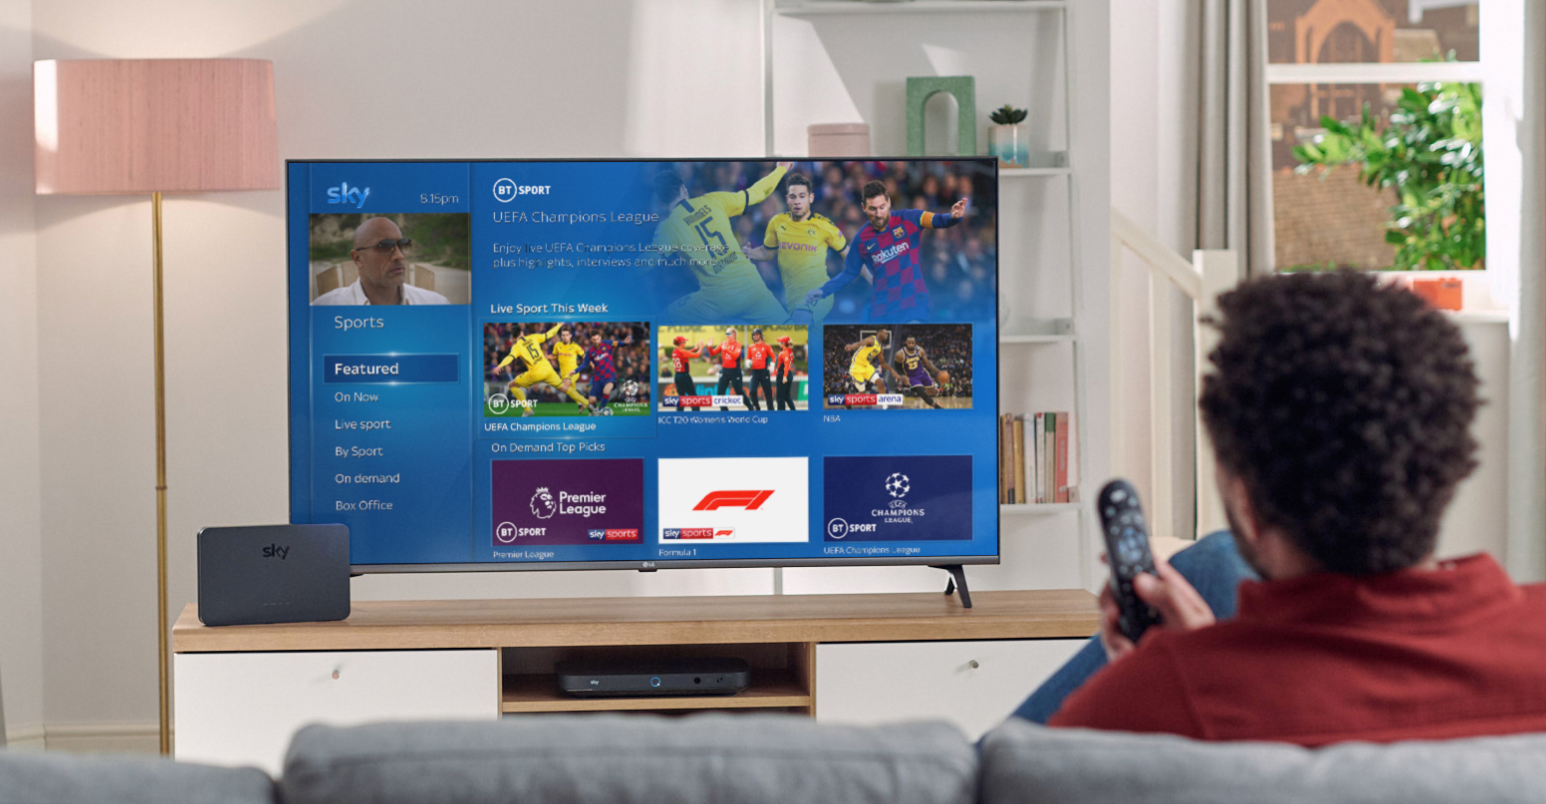 Sky launches new packages with BT Sport